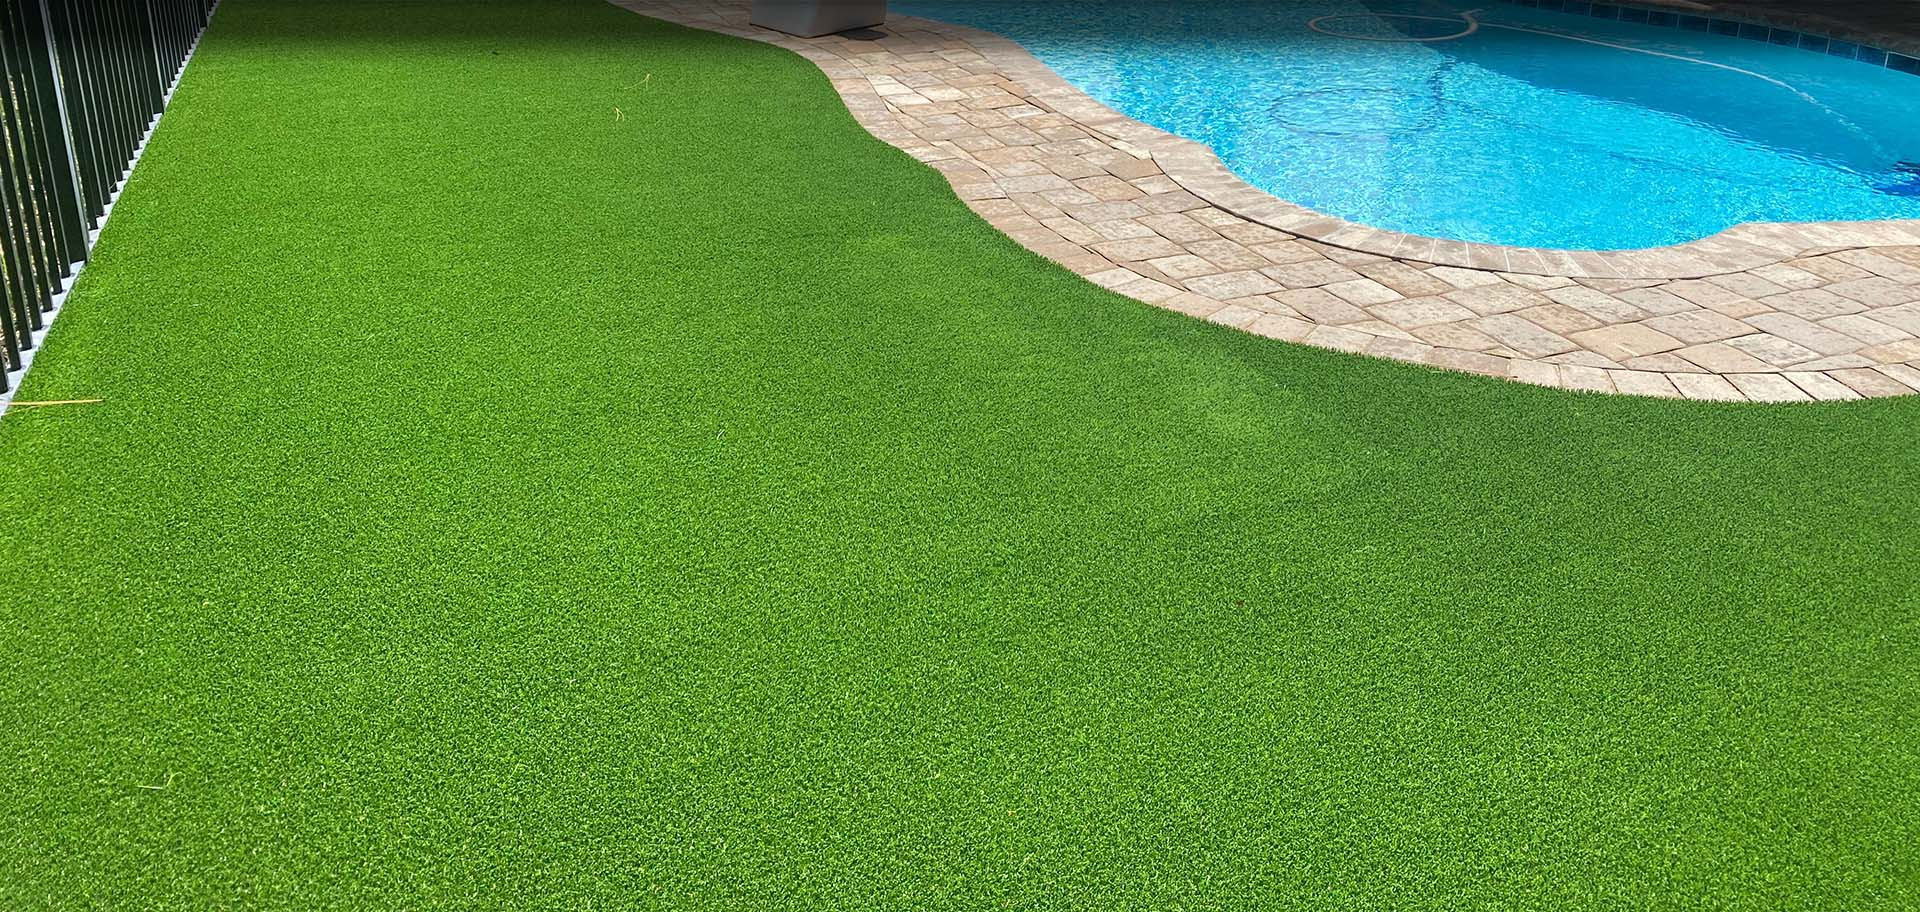 Boca Raton Artificial Grass Installation, Synthetic Turf Installation and Putting Green Installation